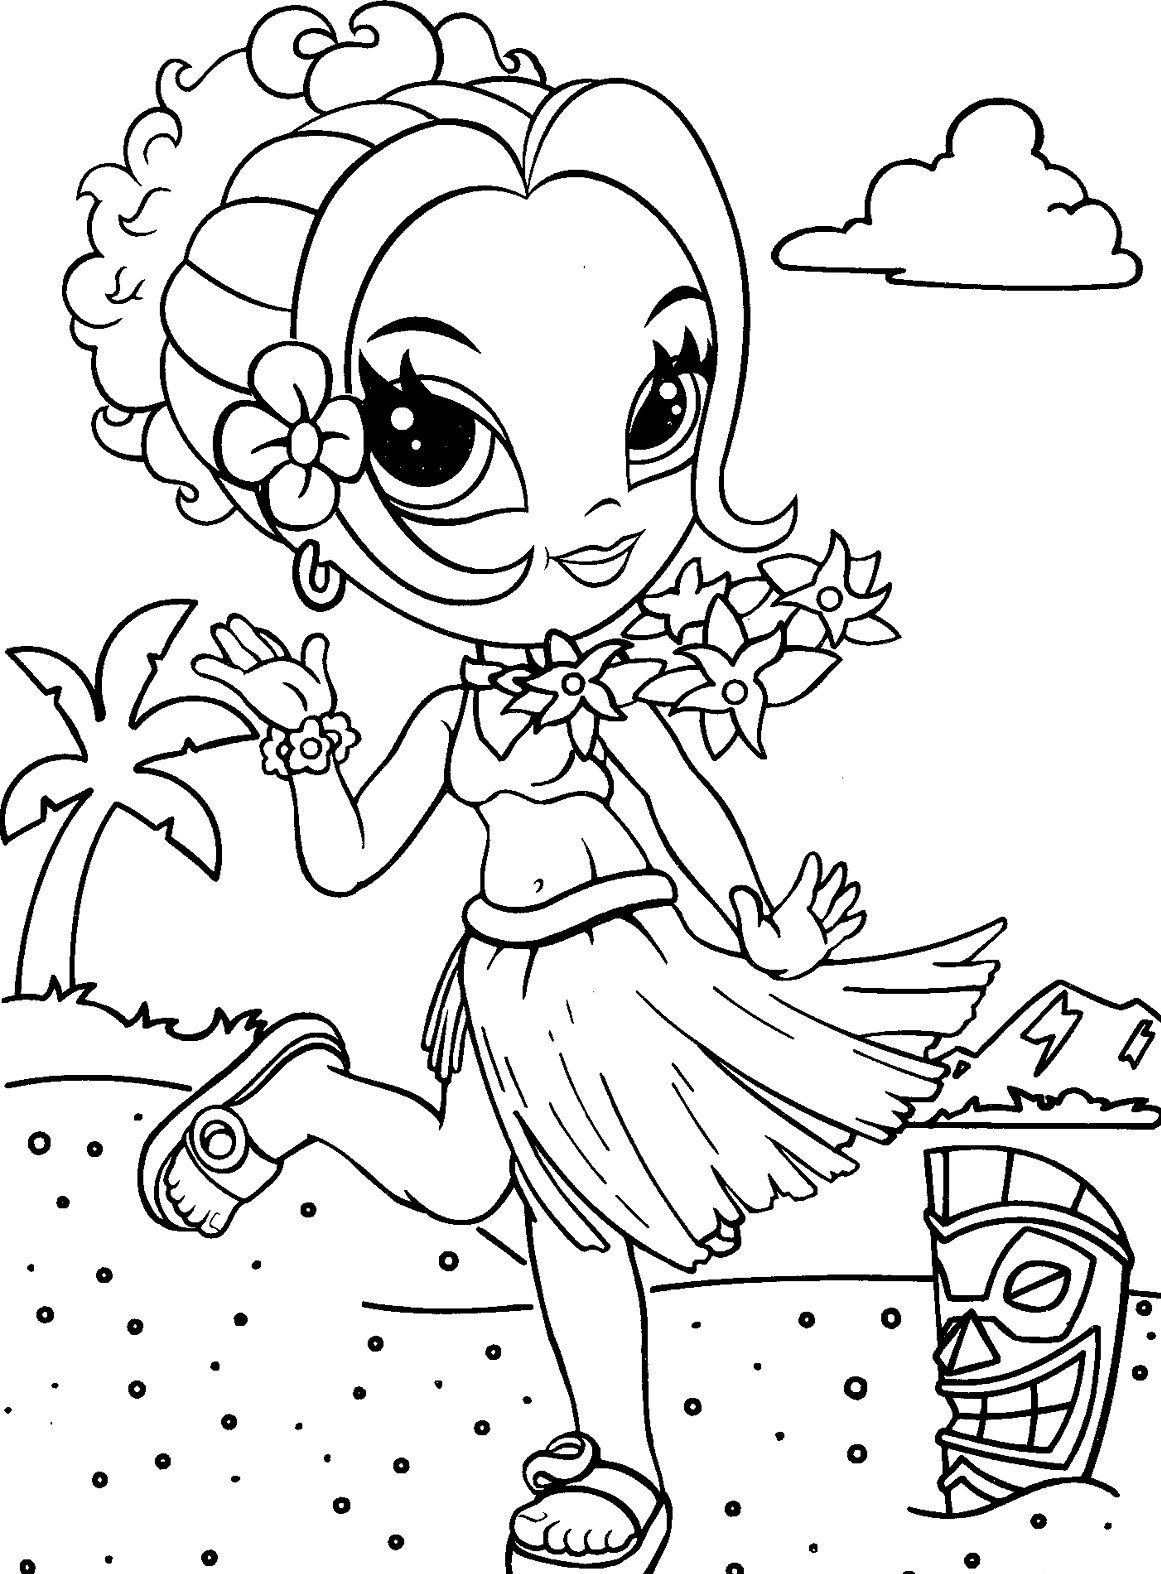 Lisa frank coloring pages to color online - Printable Lisa Frank Coloring Page Featuring Glamour Girl